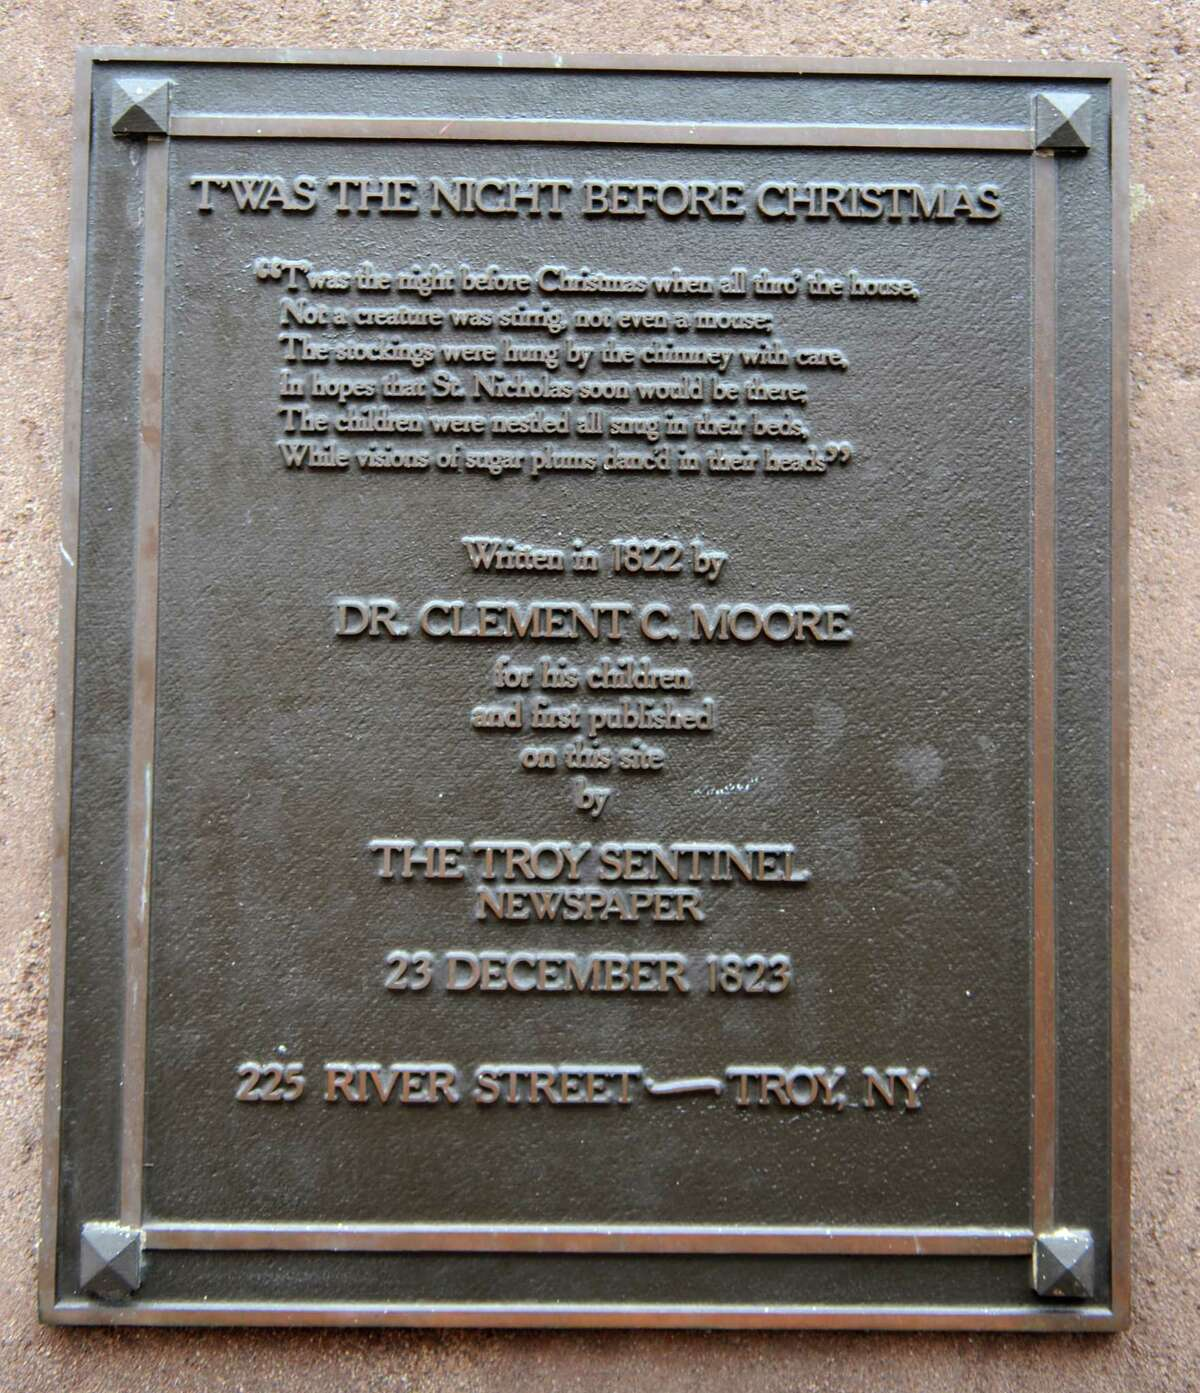 Plaque about poem and Clement C. Moore as author outside former Troy Sentinel newspaper office, 225 River St. on Thursday, Dec. 5, 2013 in Troy, N.Y. A group of people are involved in staging a mock trial Livingston v. Moore on Dec. 18 in Rensselaer County Courthouse. The trial was to resolve the dispute over authorship of